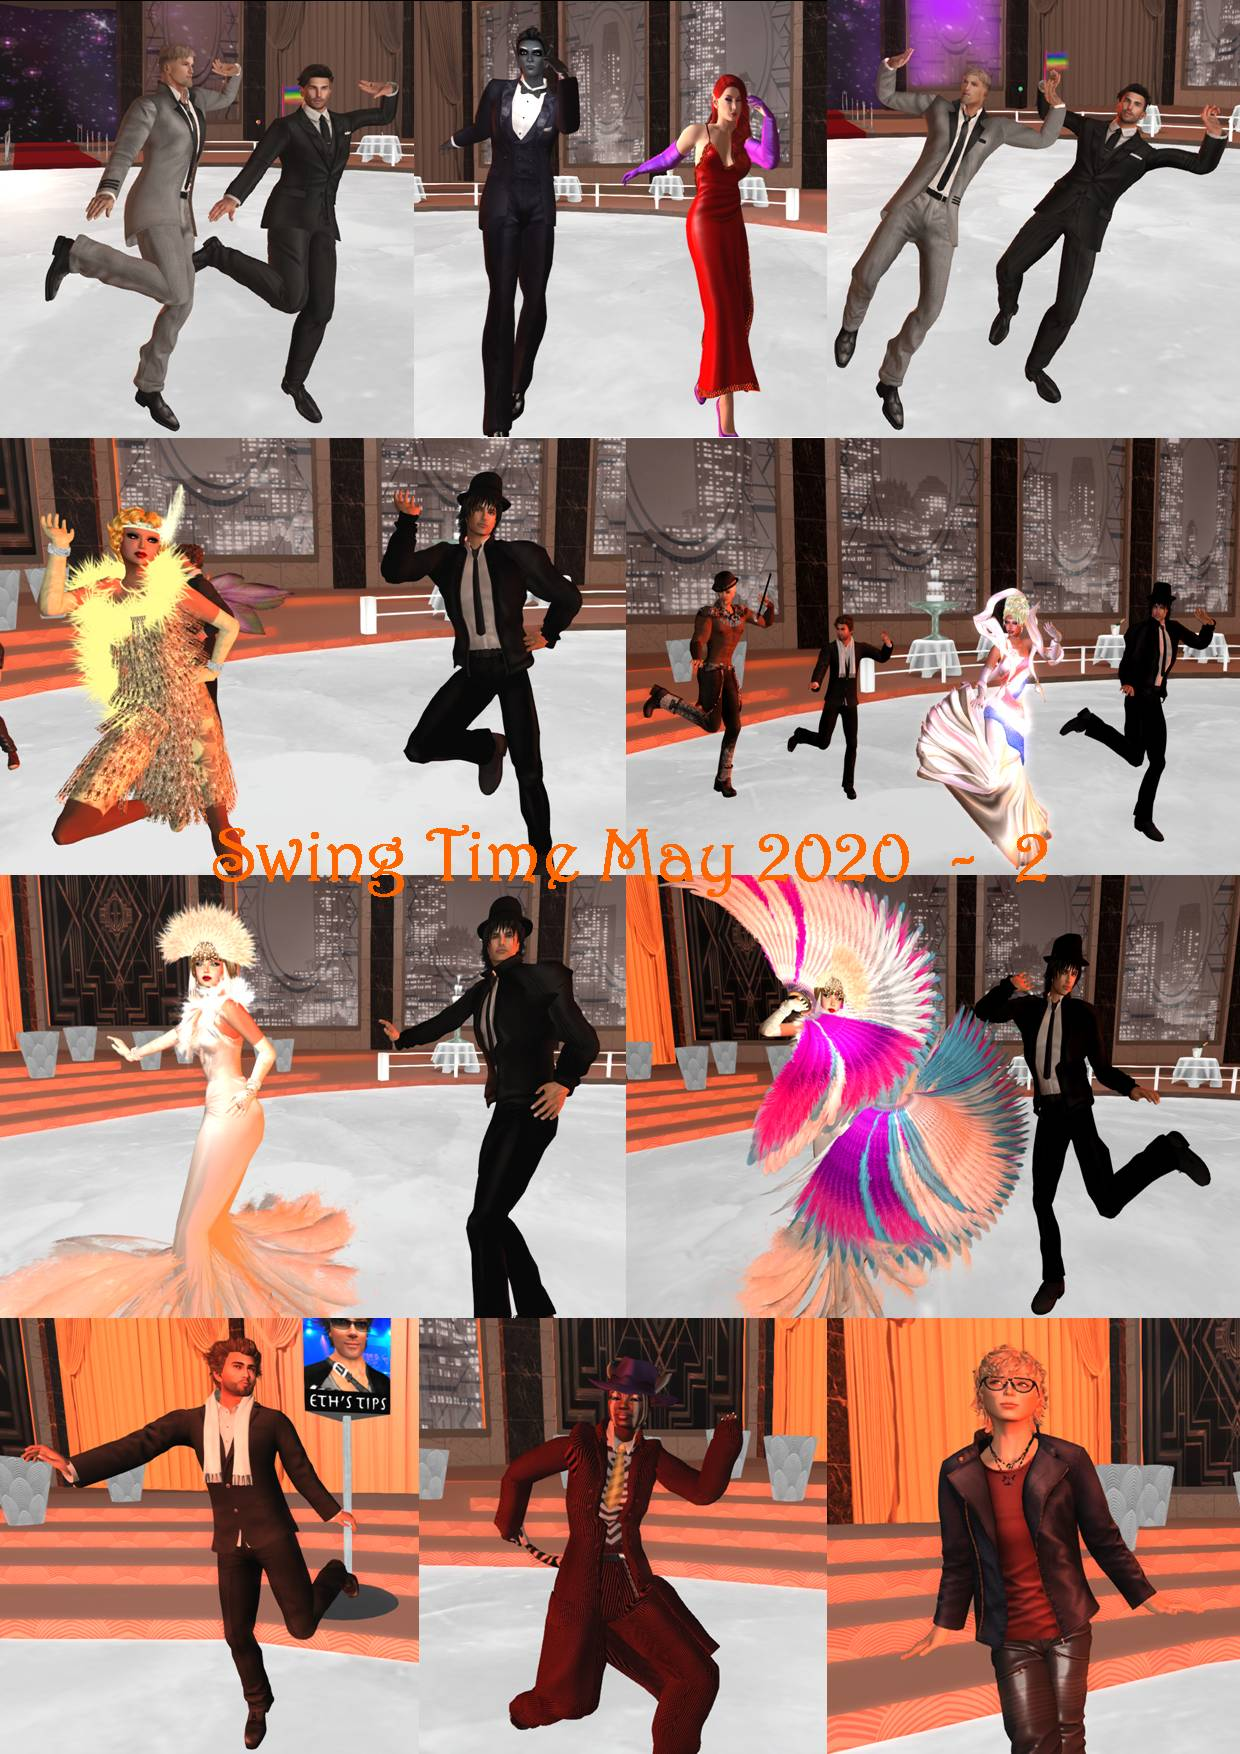 SWING TIME COLLAGE MAY 2020 - 2